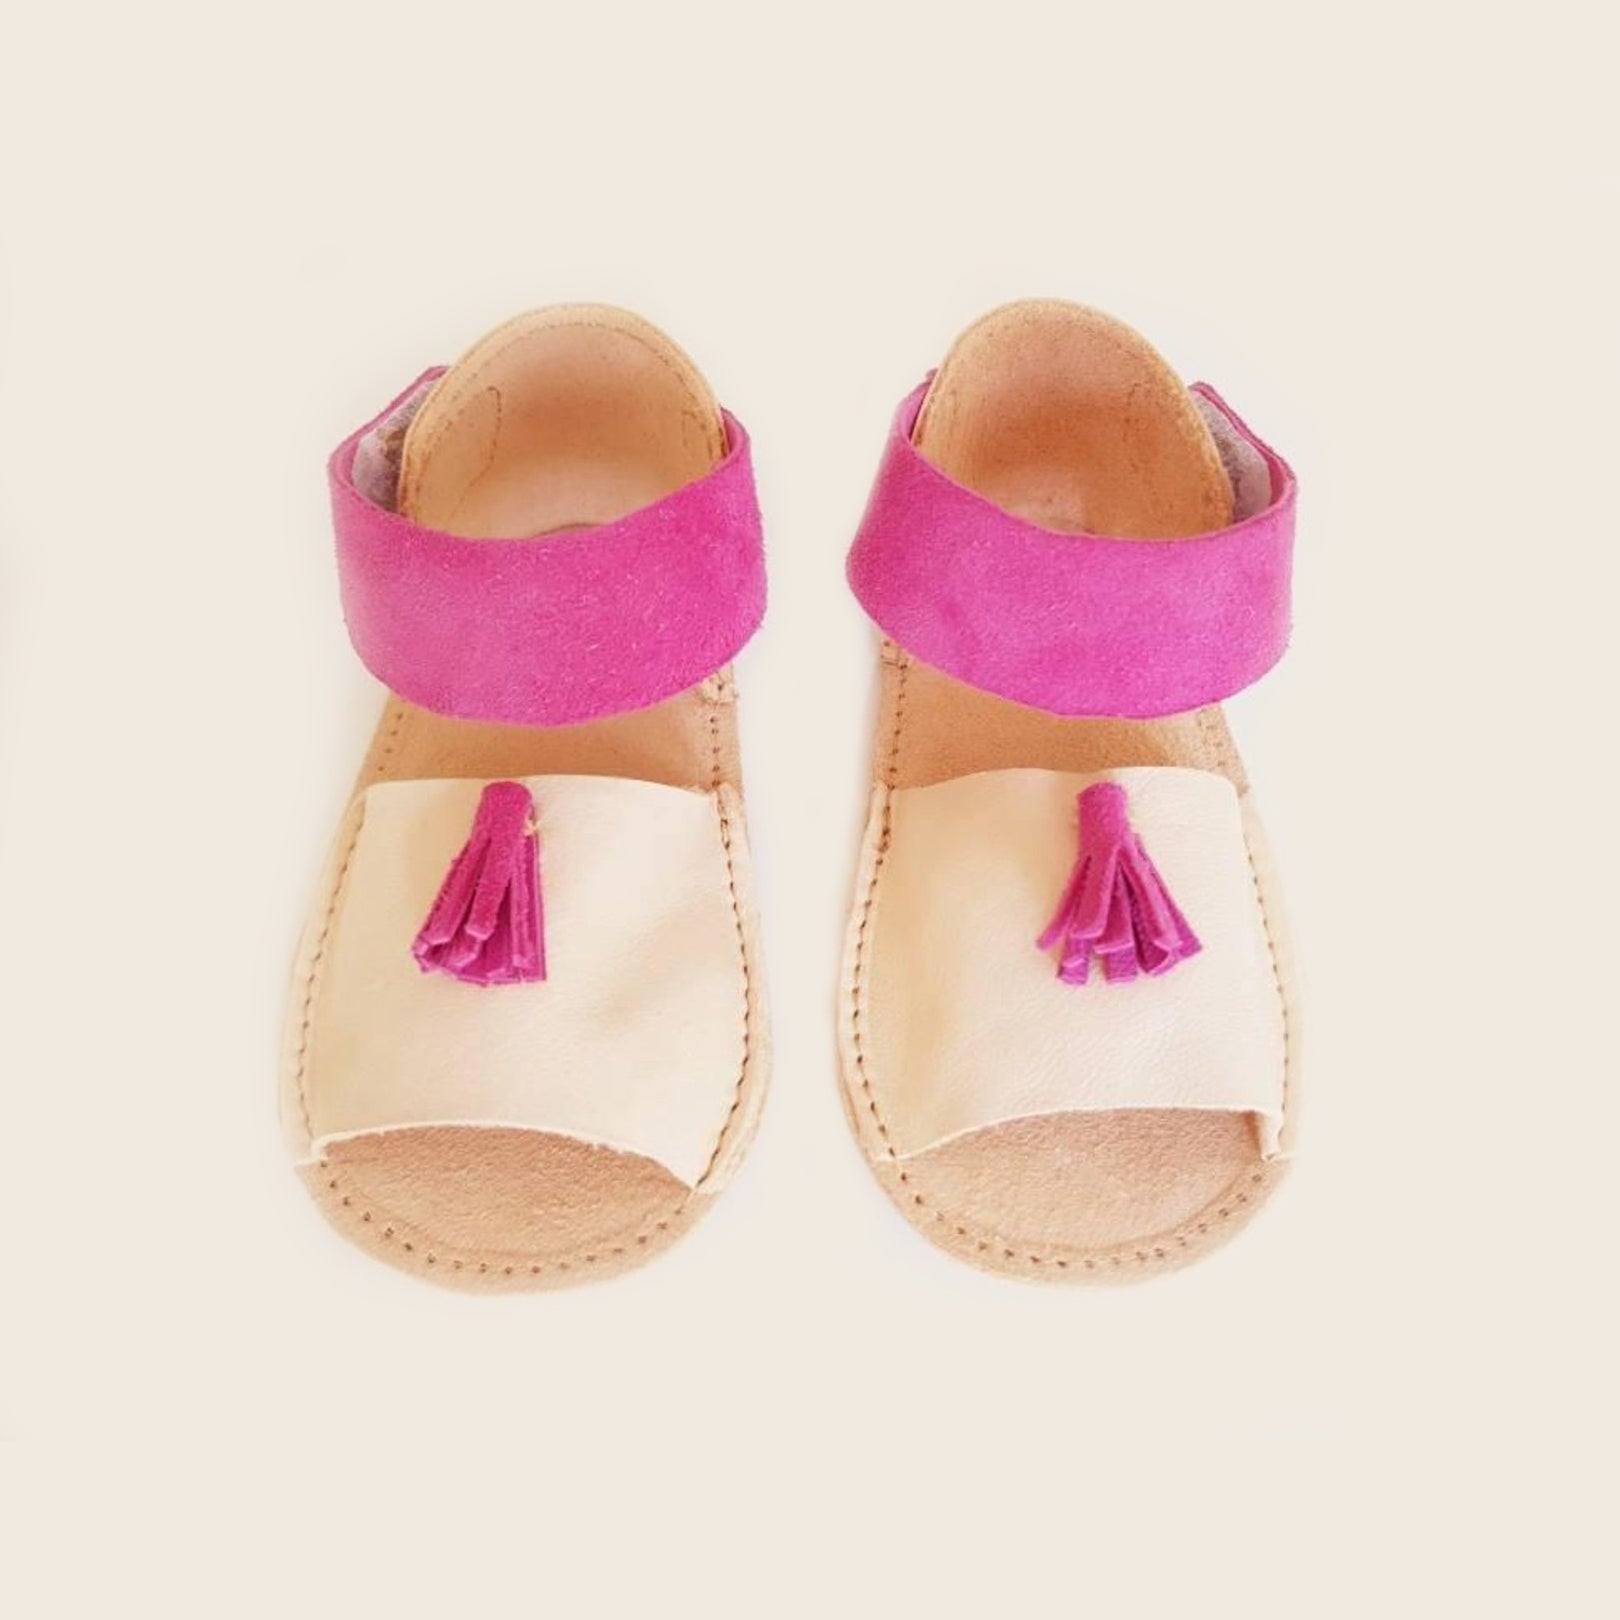 fe08855a5a75 Baby girl leather sandals - Mika   Meia